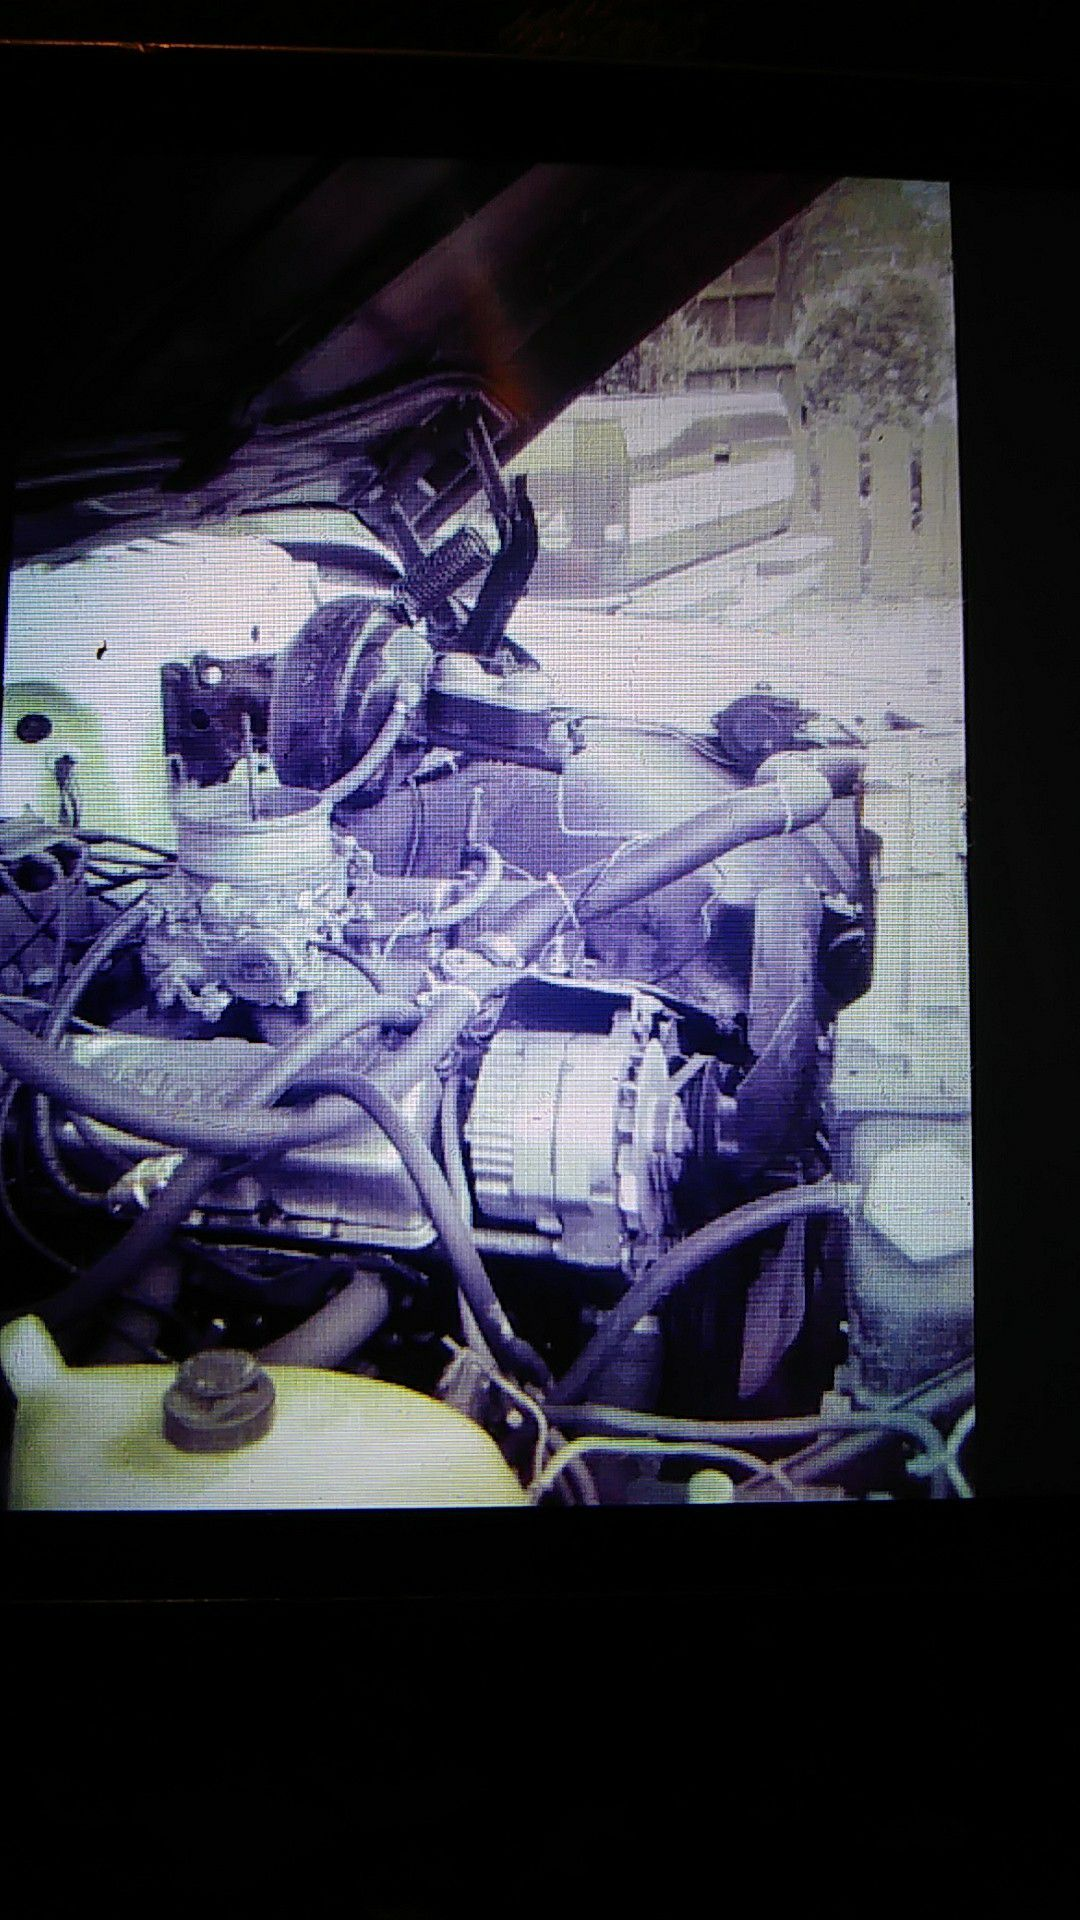 69 chevy 400 h. Corevette motor with lots of extras